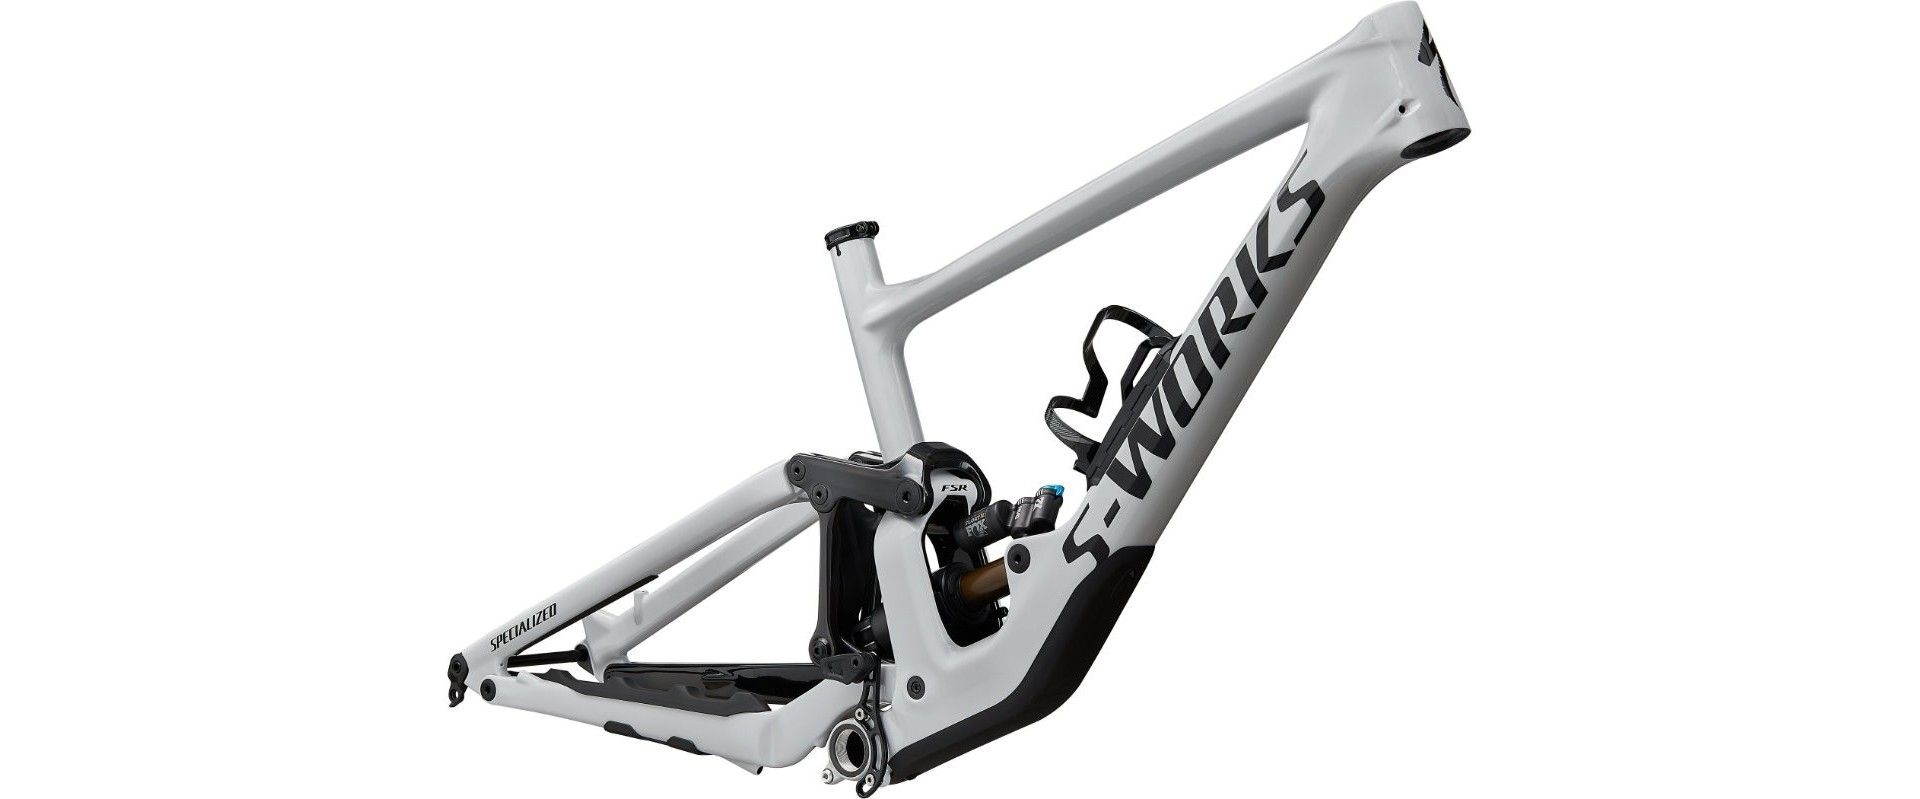 ♥ Buy Specialized Diverge ♥ - Bikes Gravel Adventure - in IBKBike Specialized Concept Store España